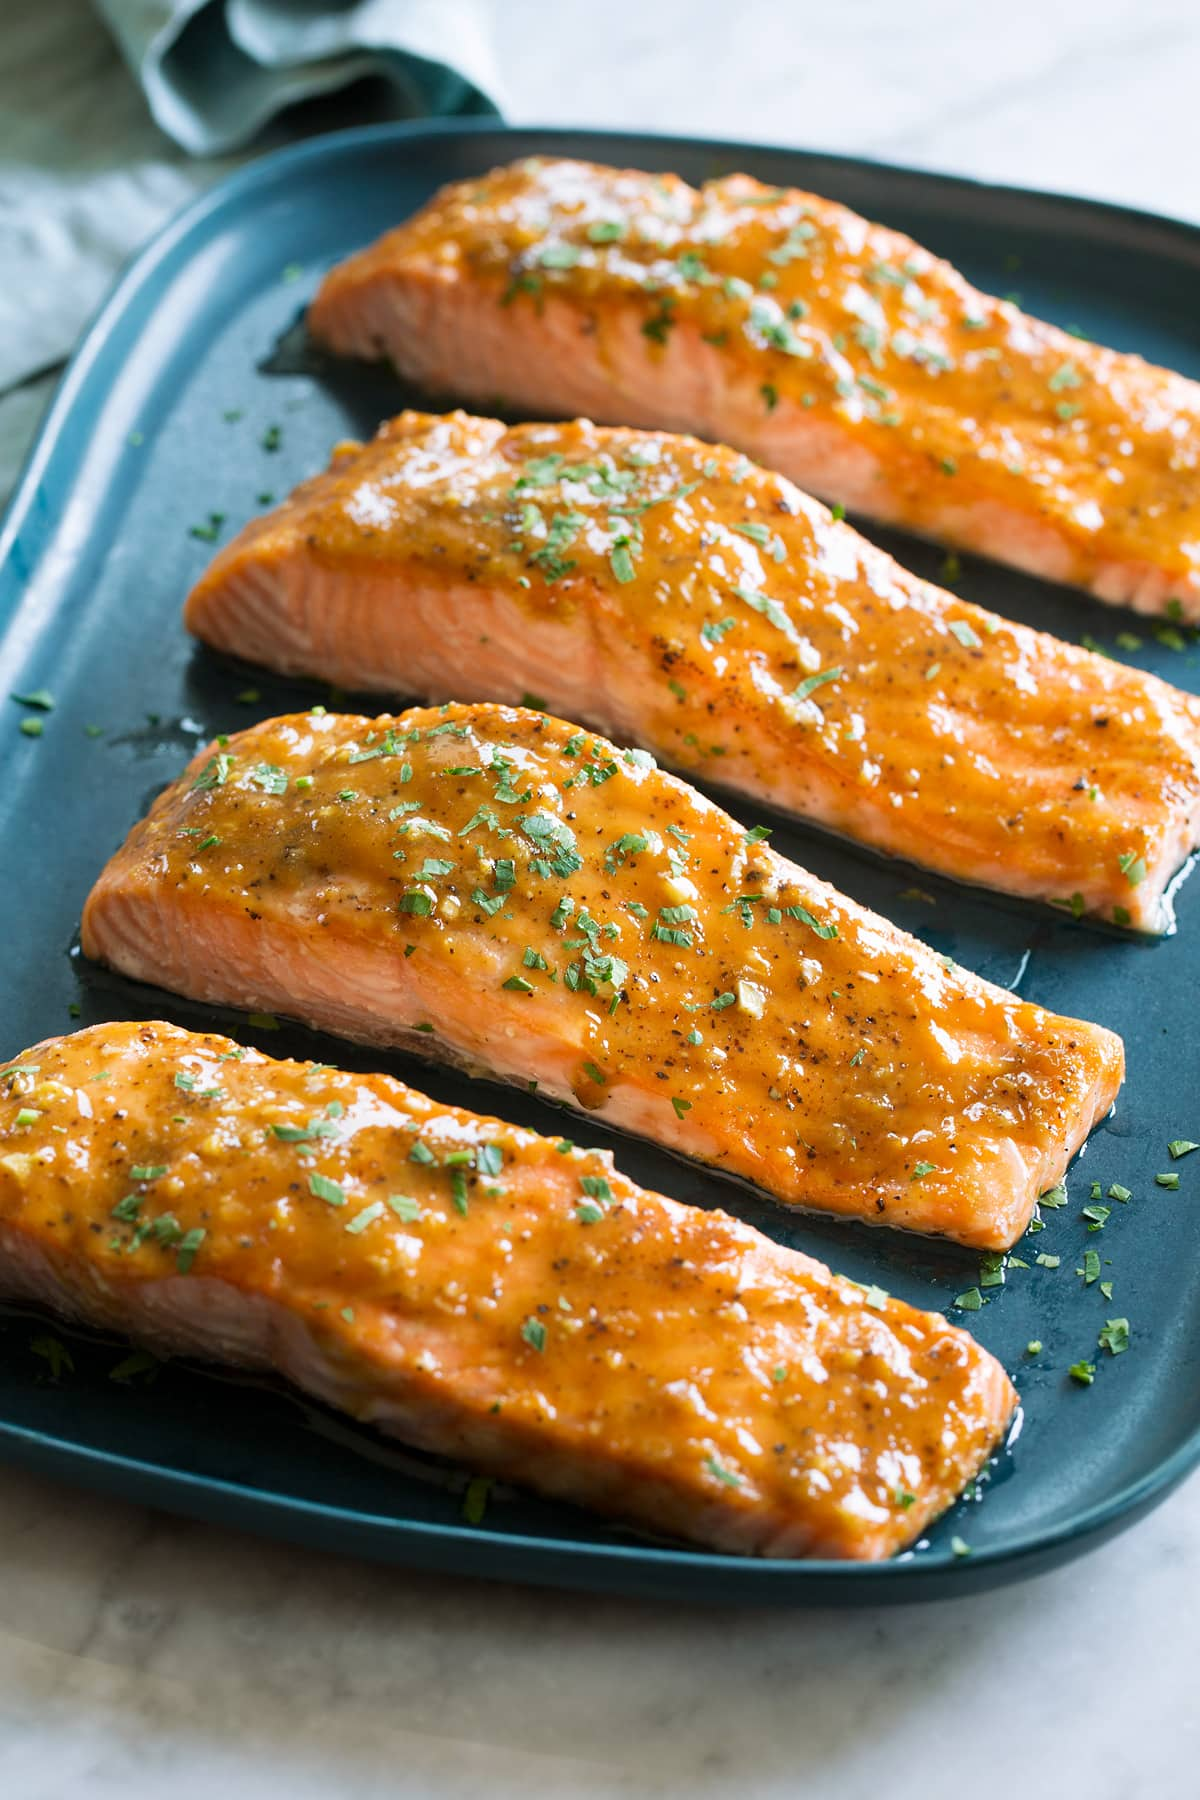 Photo of four salmon fillets coated with a brown sugar glaze resting on a blue rectangular platter on a white marble surface.